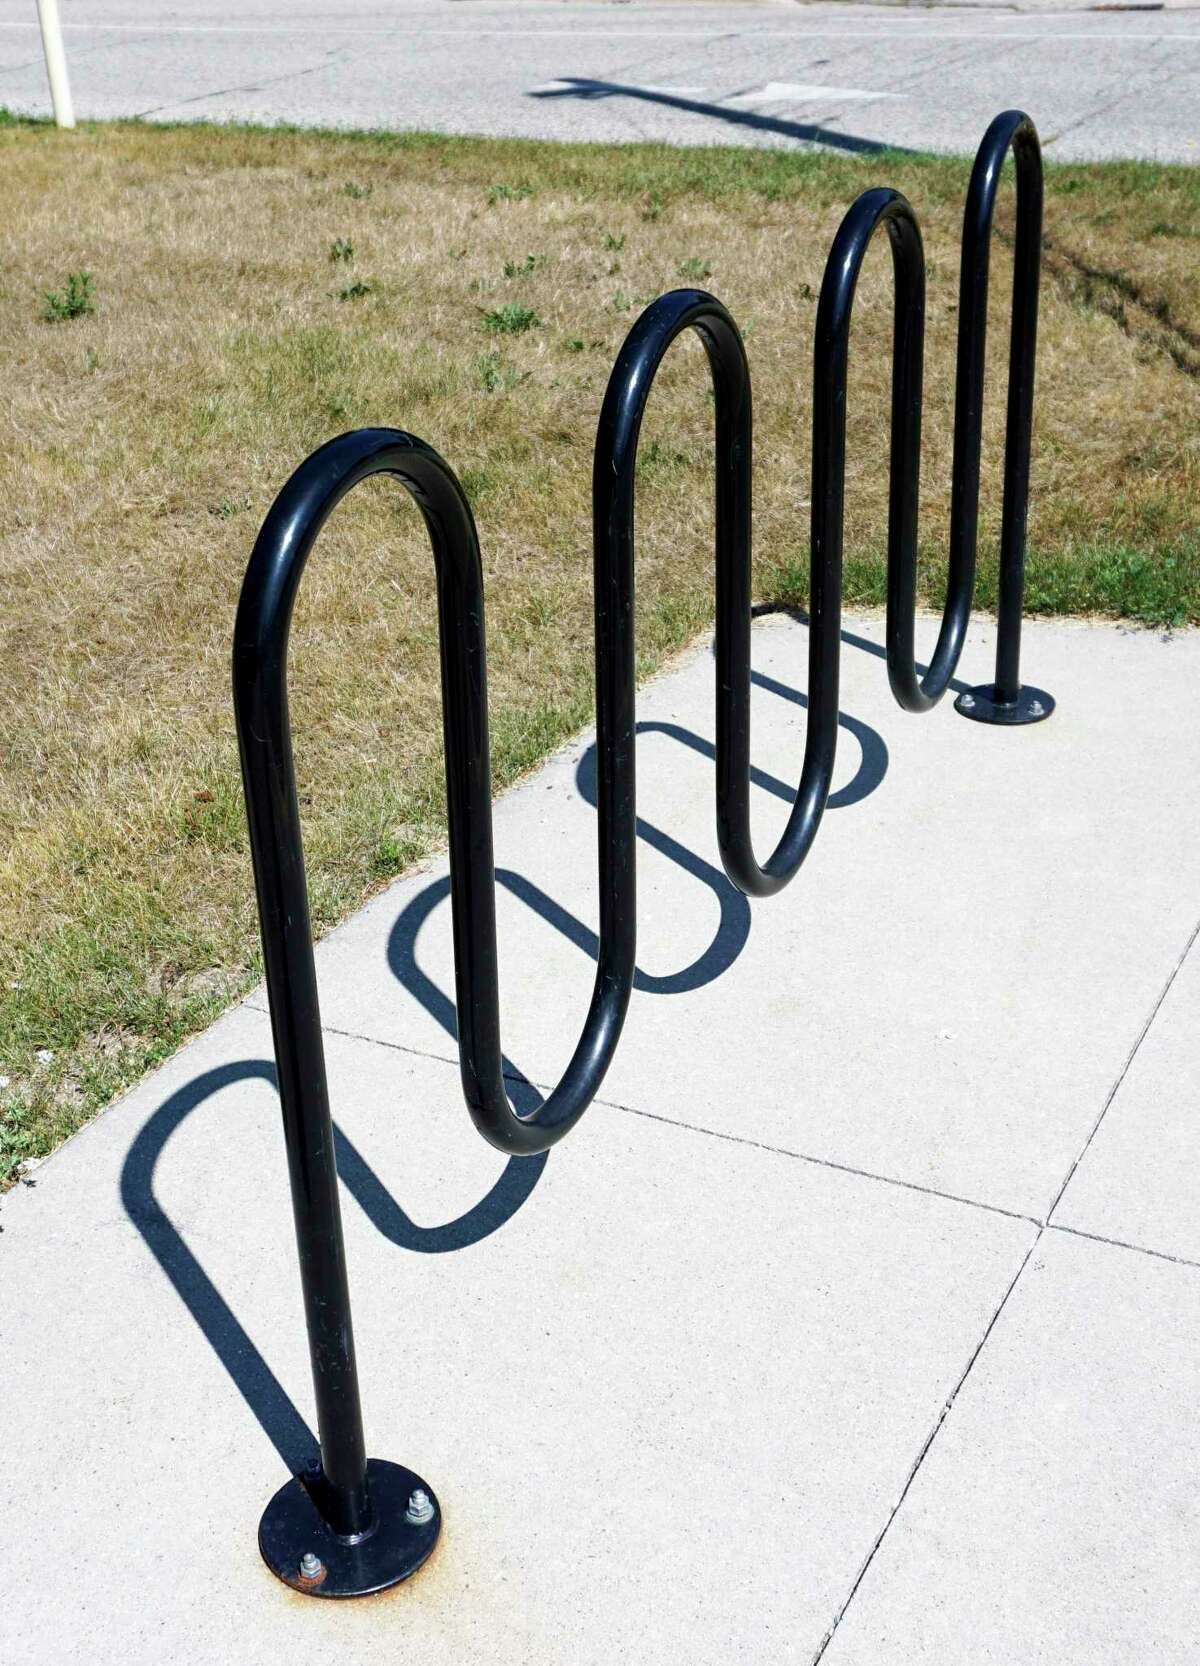 """According to the new section being added to article 5 of the zoning ordinance, bicycle parking will be required at all new parking lots. Parking shall consist of """"inverted U"""" or """"post and ring"""" style racks. (Pioneer photo/Joe Judd)"""